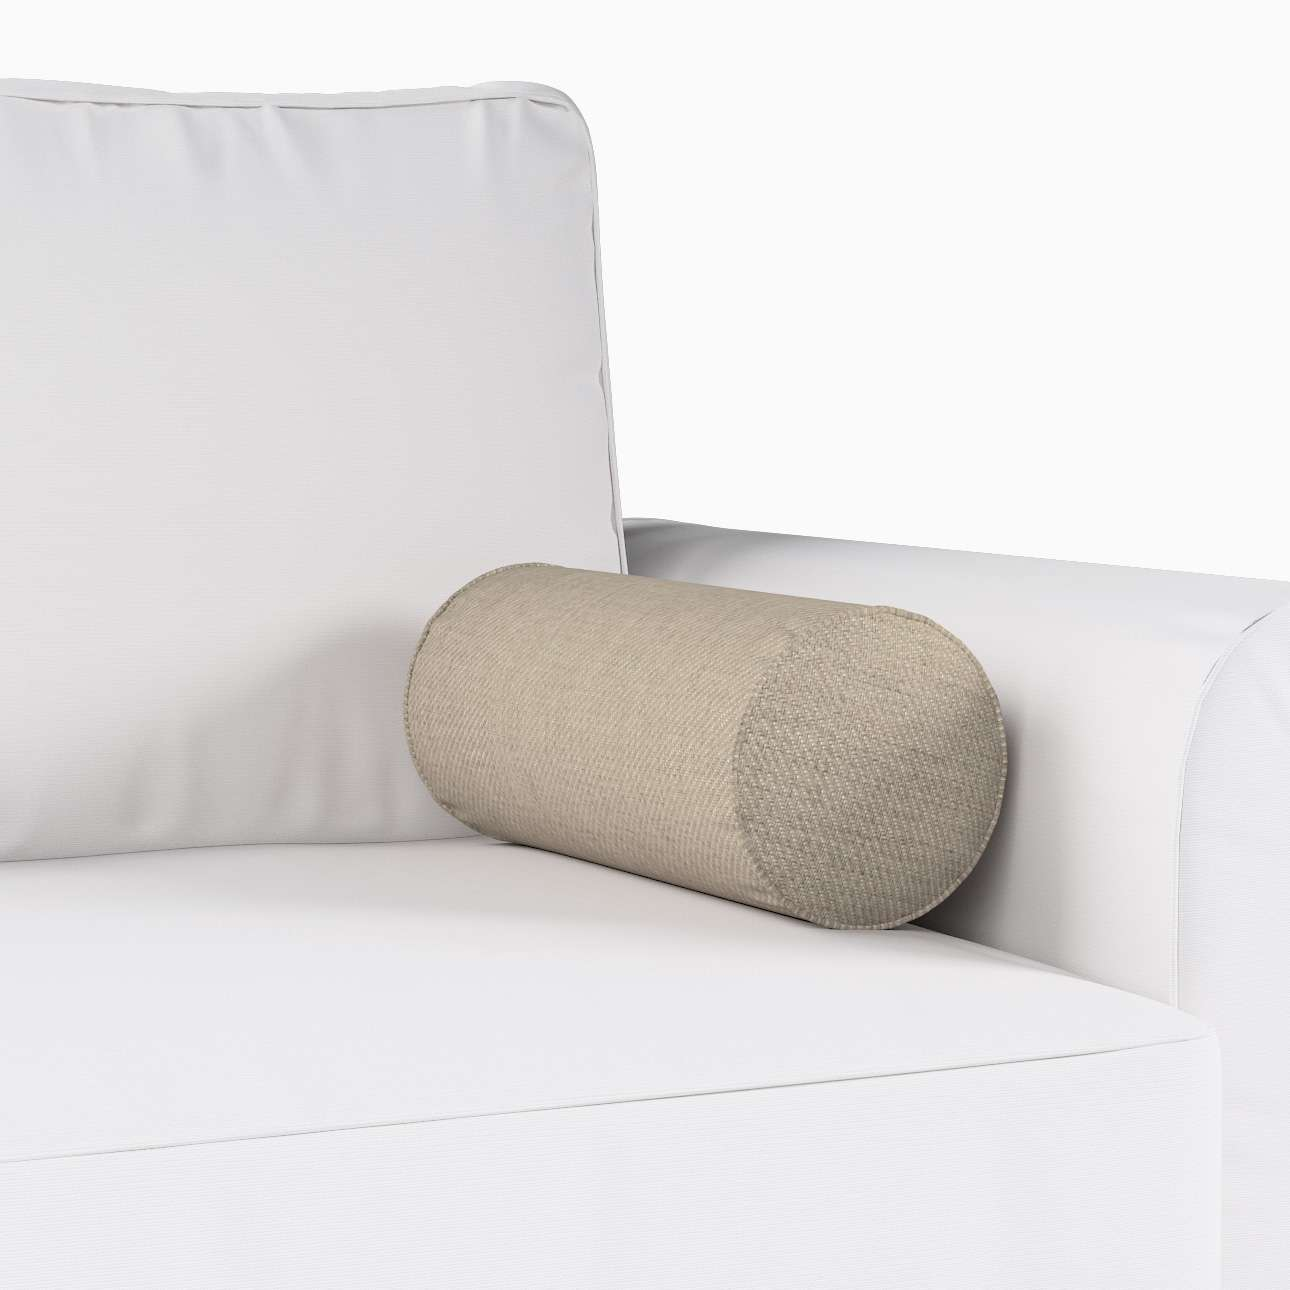 Bolster cushion  in collection Living, fabric: 104-87